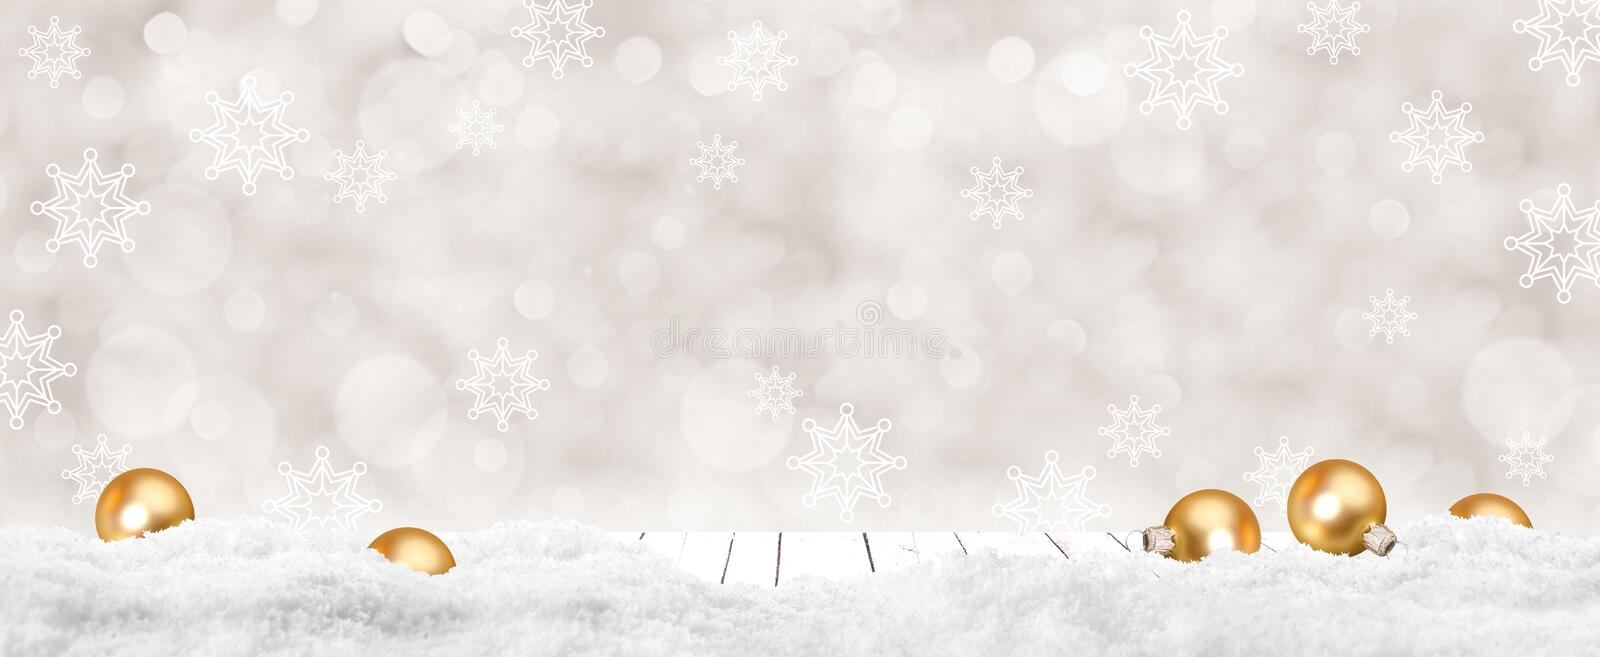 Christmas background for photo studio with wooden table and backdrop. Balls, snowflakes royalty free stock photography